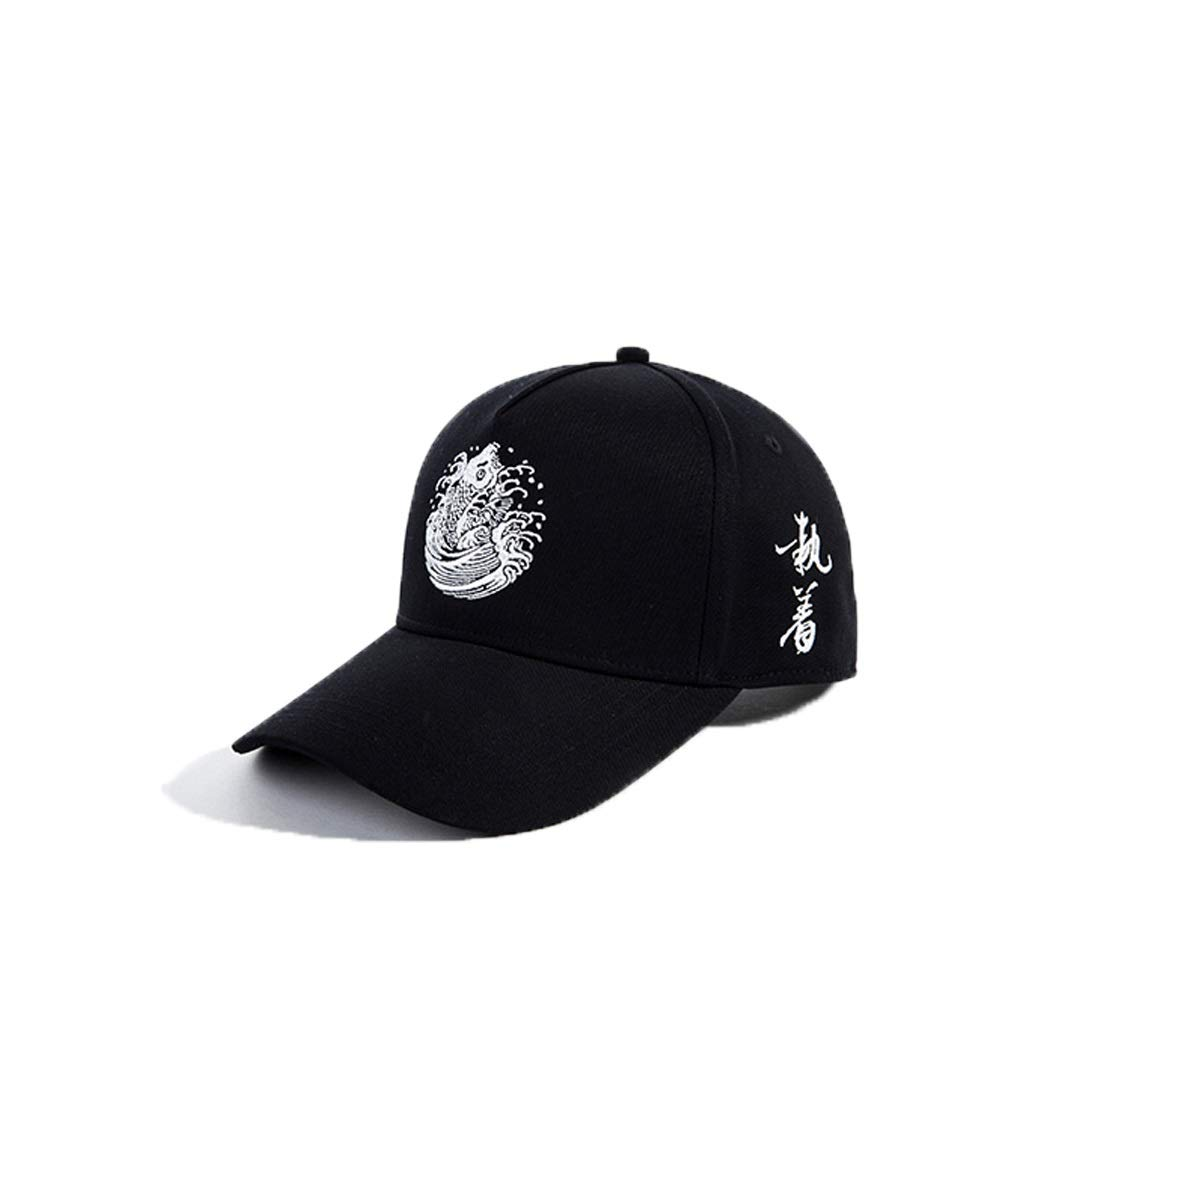 Zhongyue Hat Male Summer Cap Chinese Style Outdoor Sports Cap Casual Wild Baseball Cap, White, Blue, Black Summer hat (Color : Black)